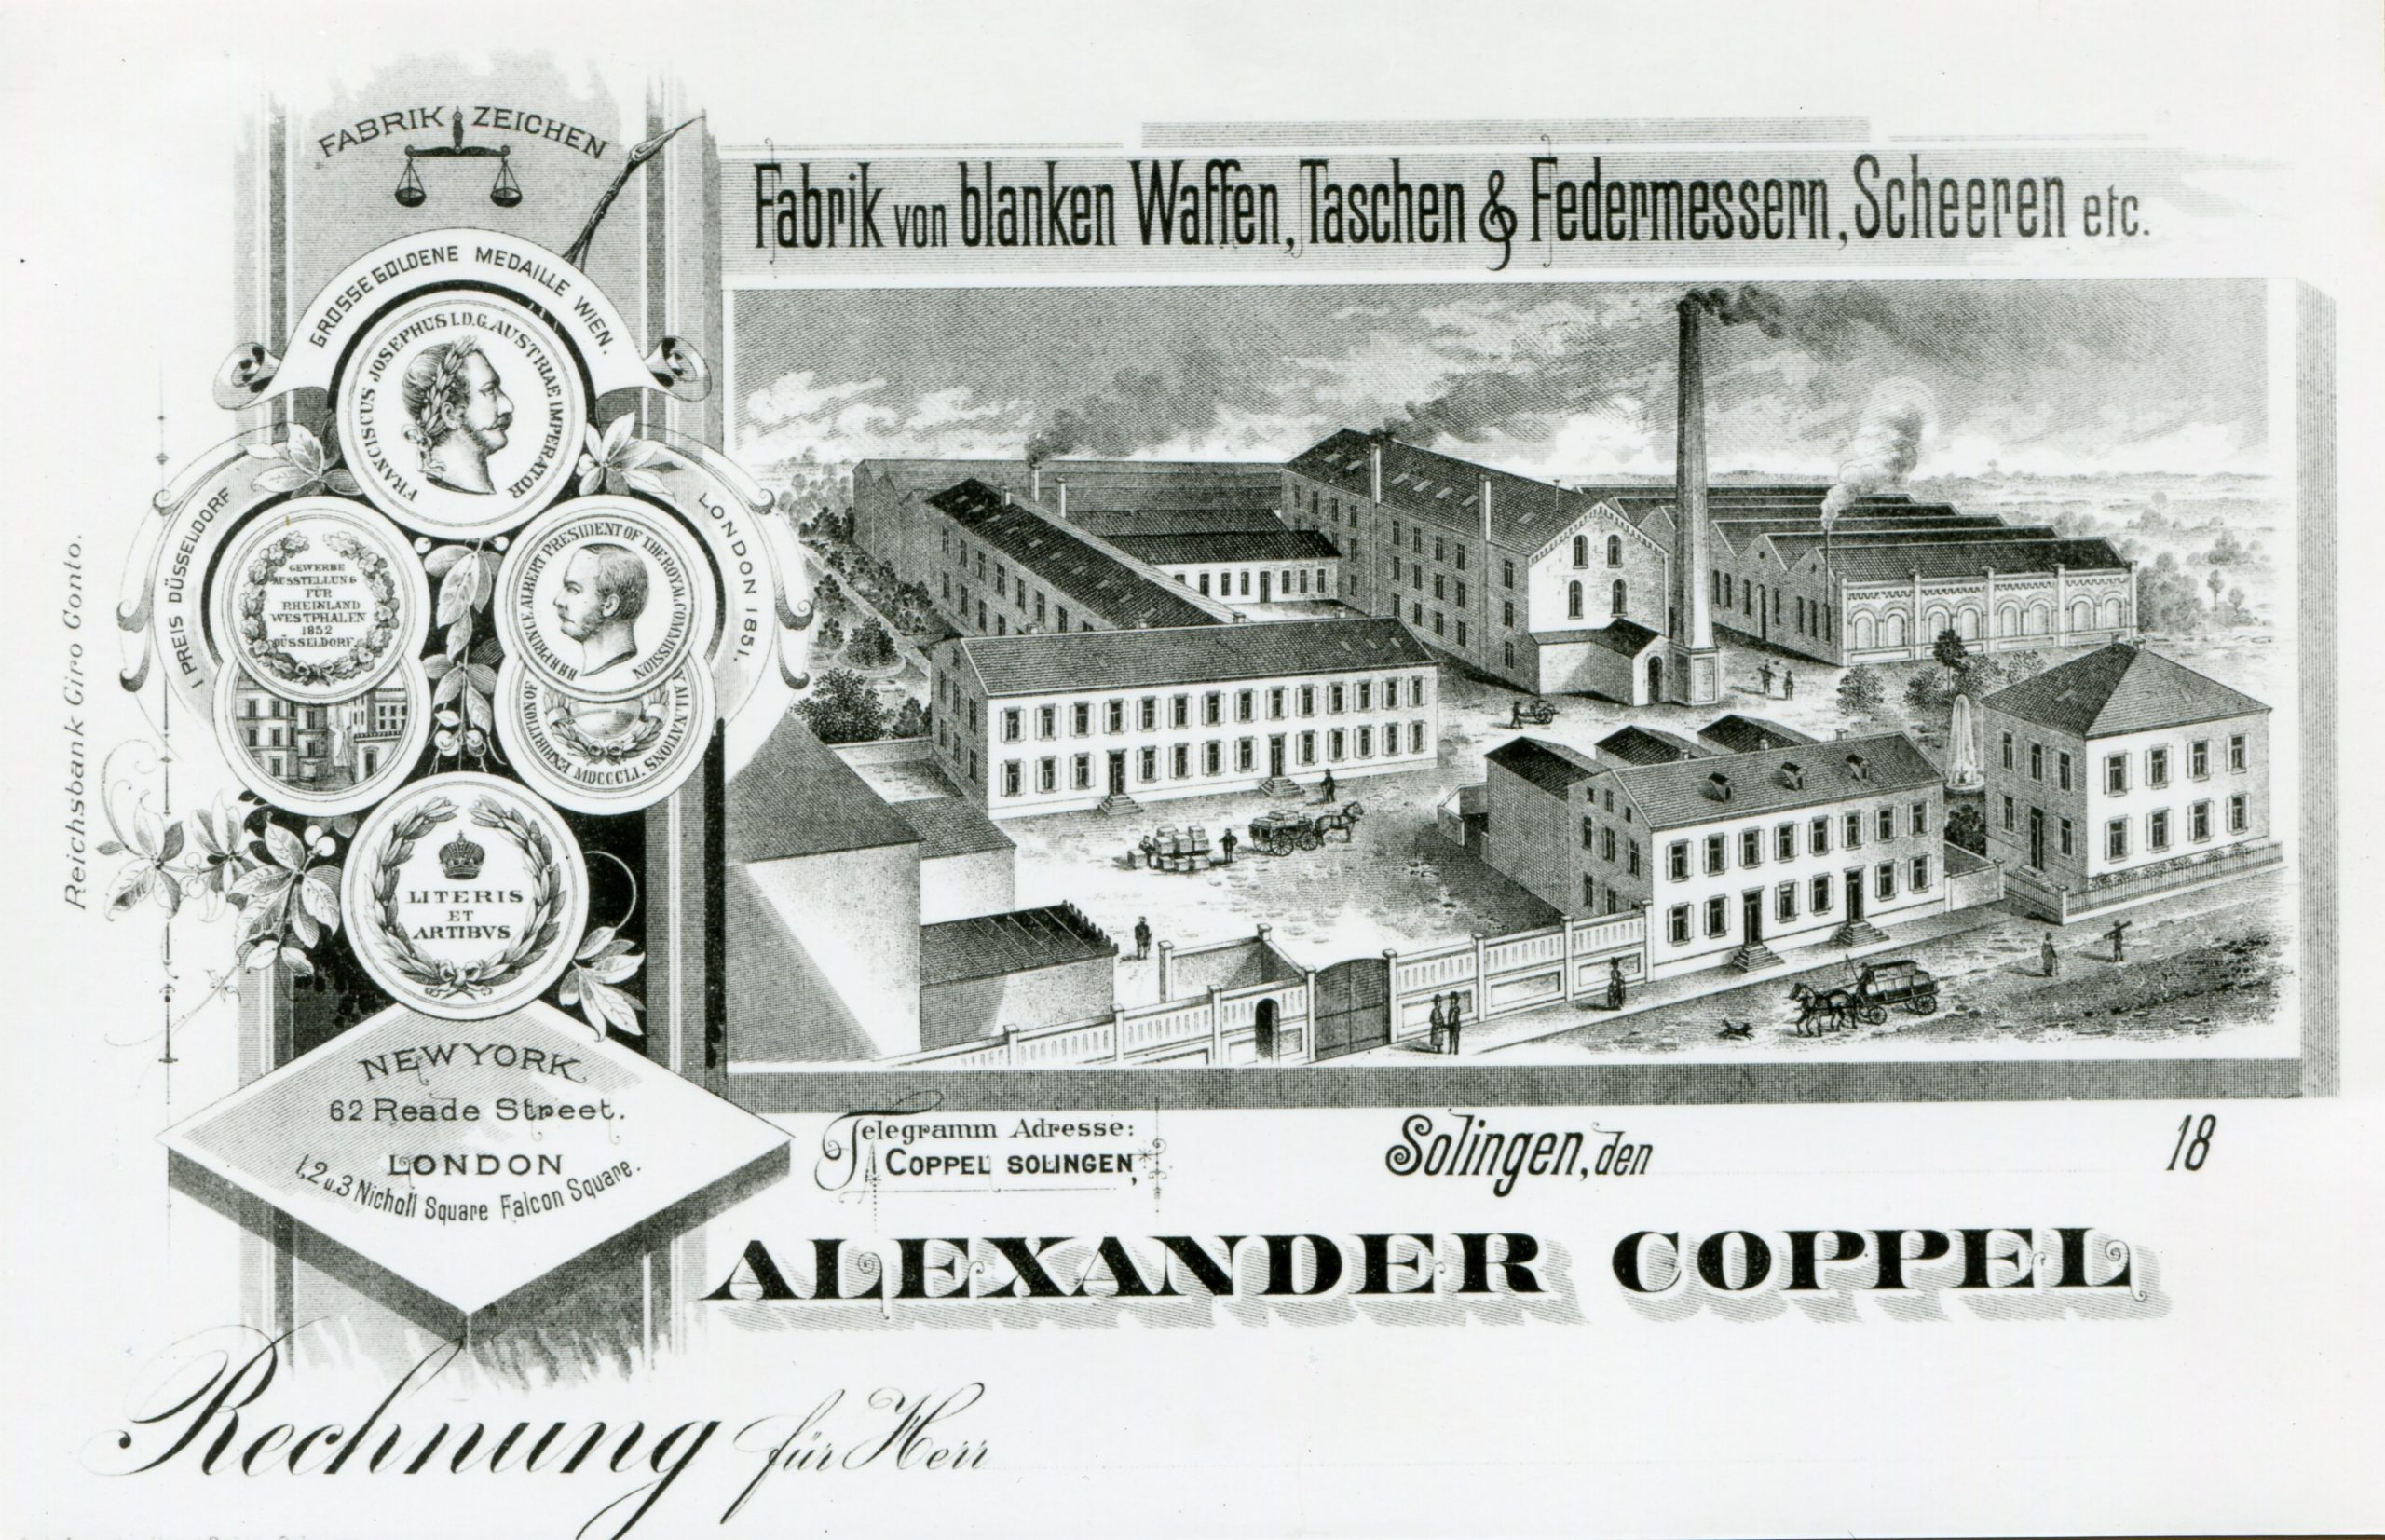 Invoice letterhead from Alexander Coppel